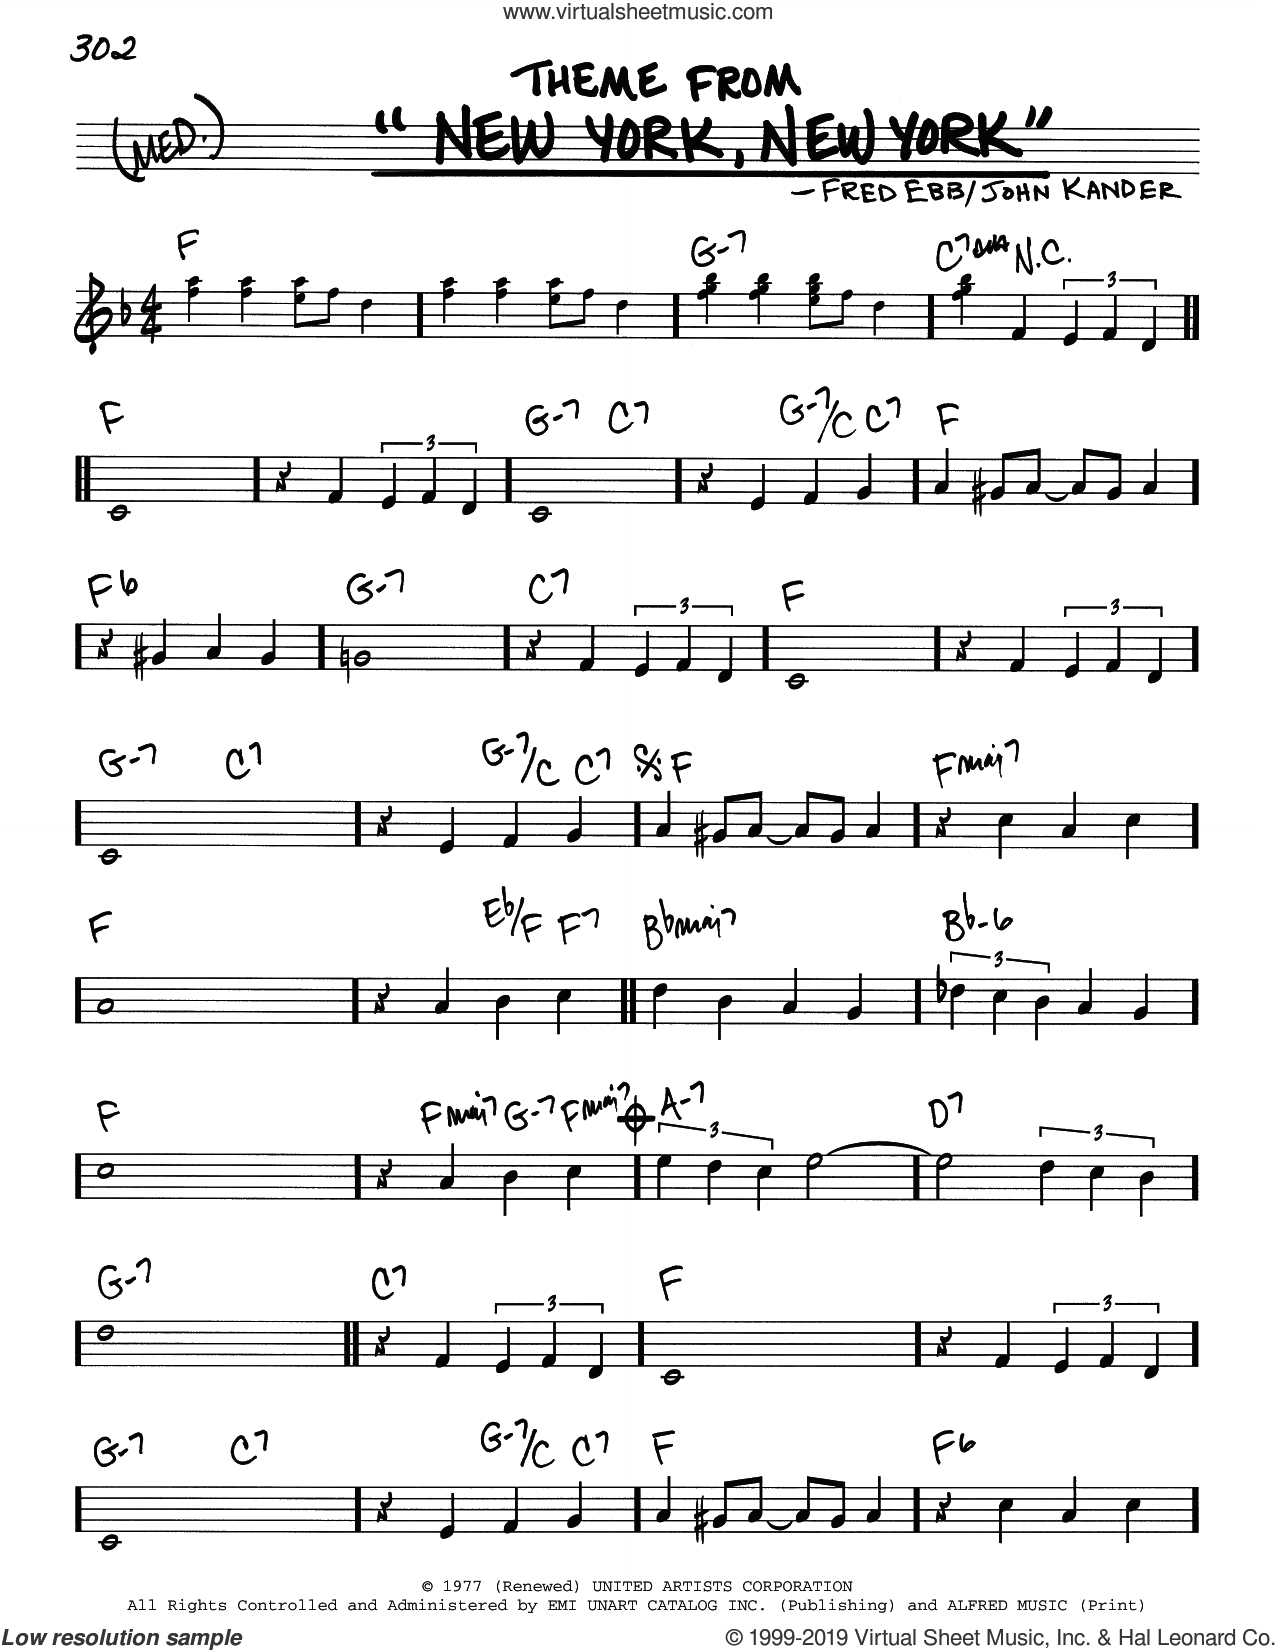 Theme From 'New York, New York' sheet music for voice and other instruments (real book) by Frank Sinatra, Fred Ebb and John Kander, intermediate skill level